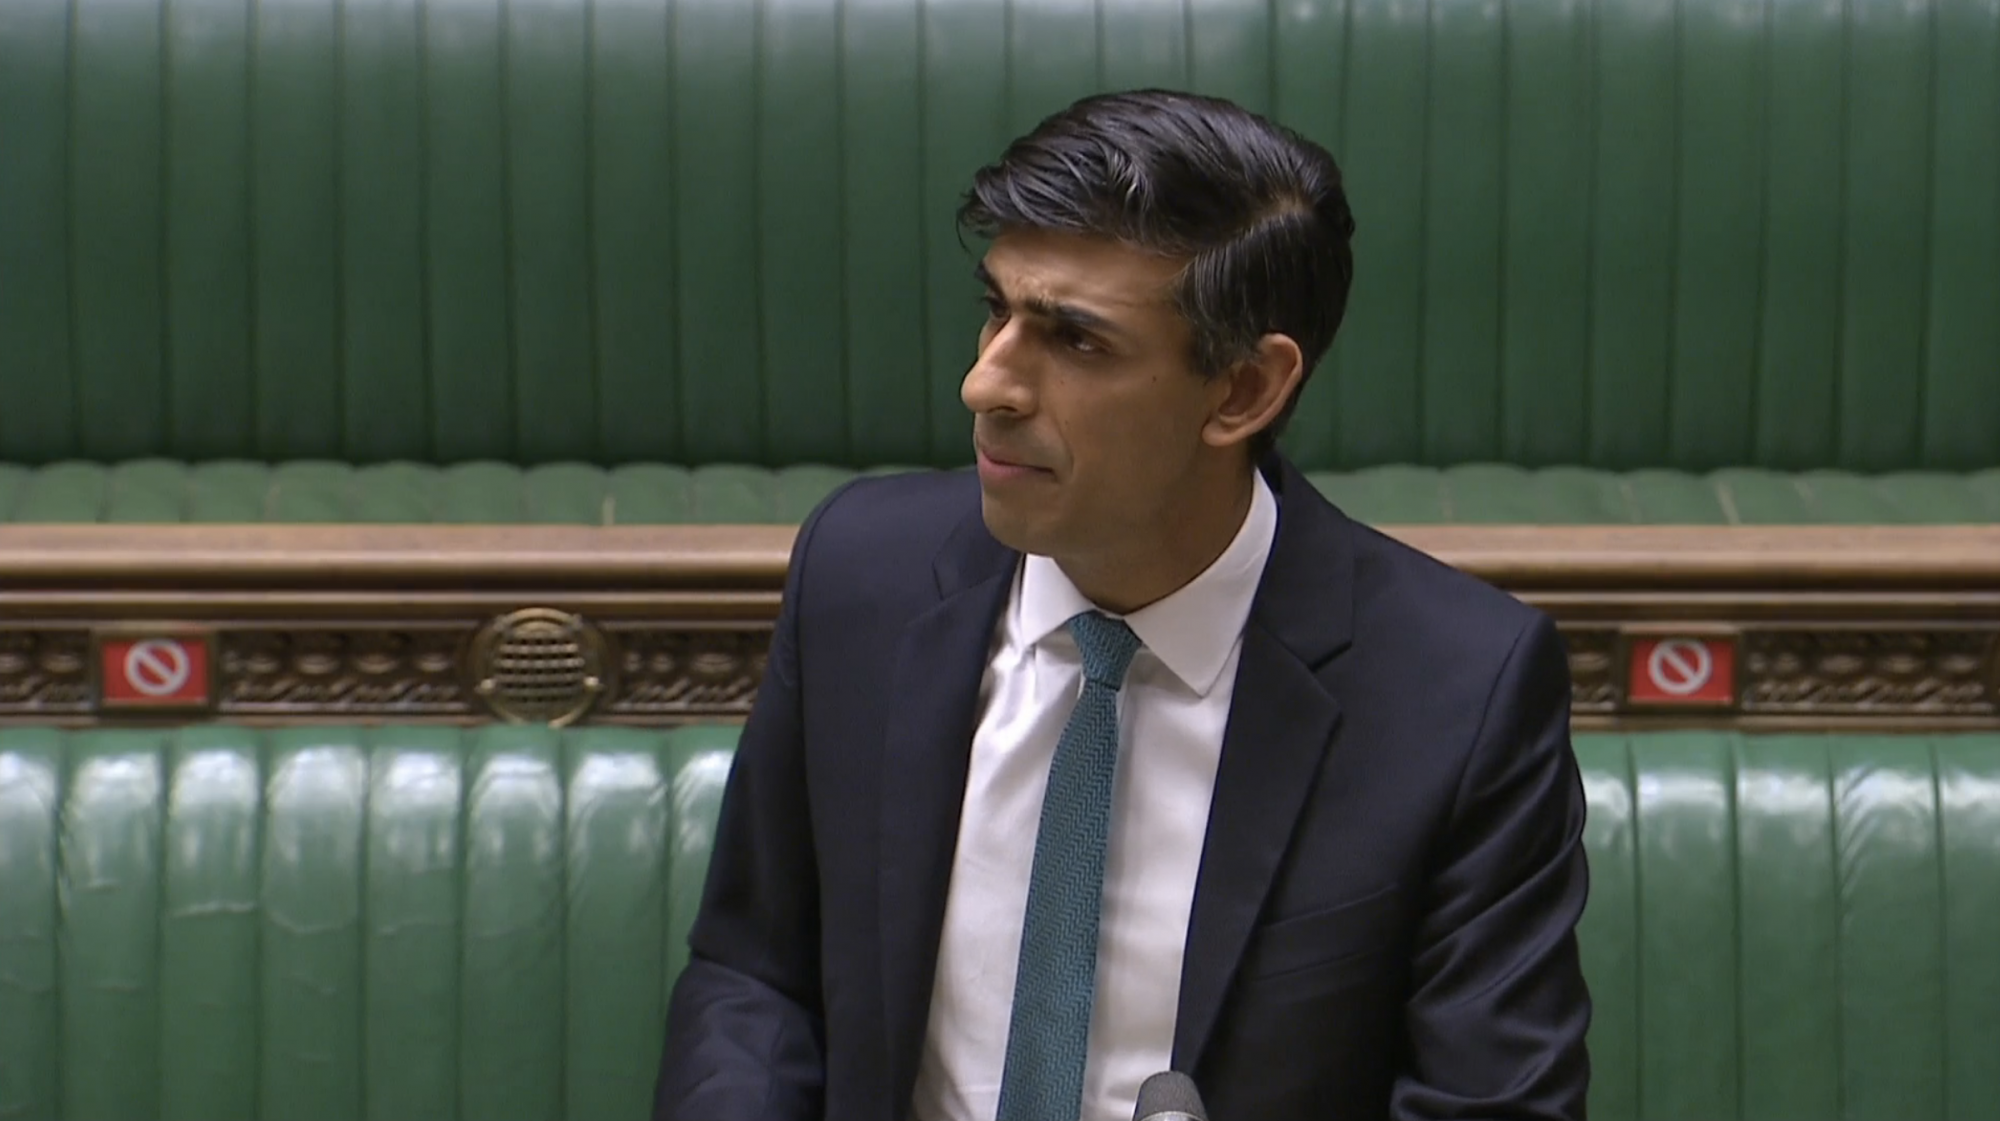 Chancellor Rishi Sunak warns UK economy will shrink by 11% this year - channel 4